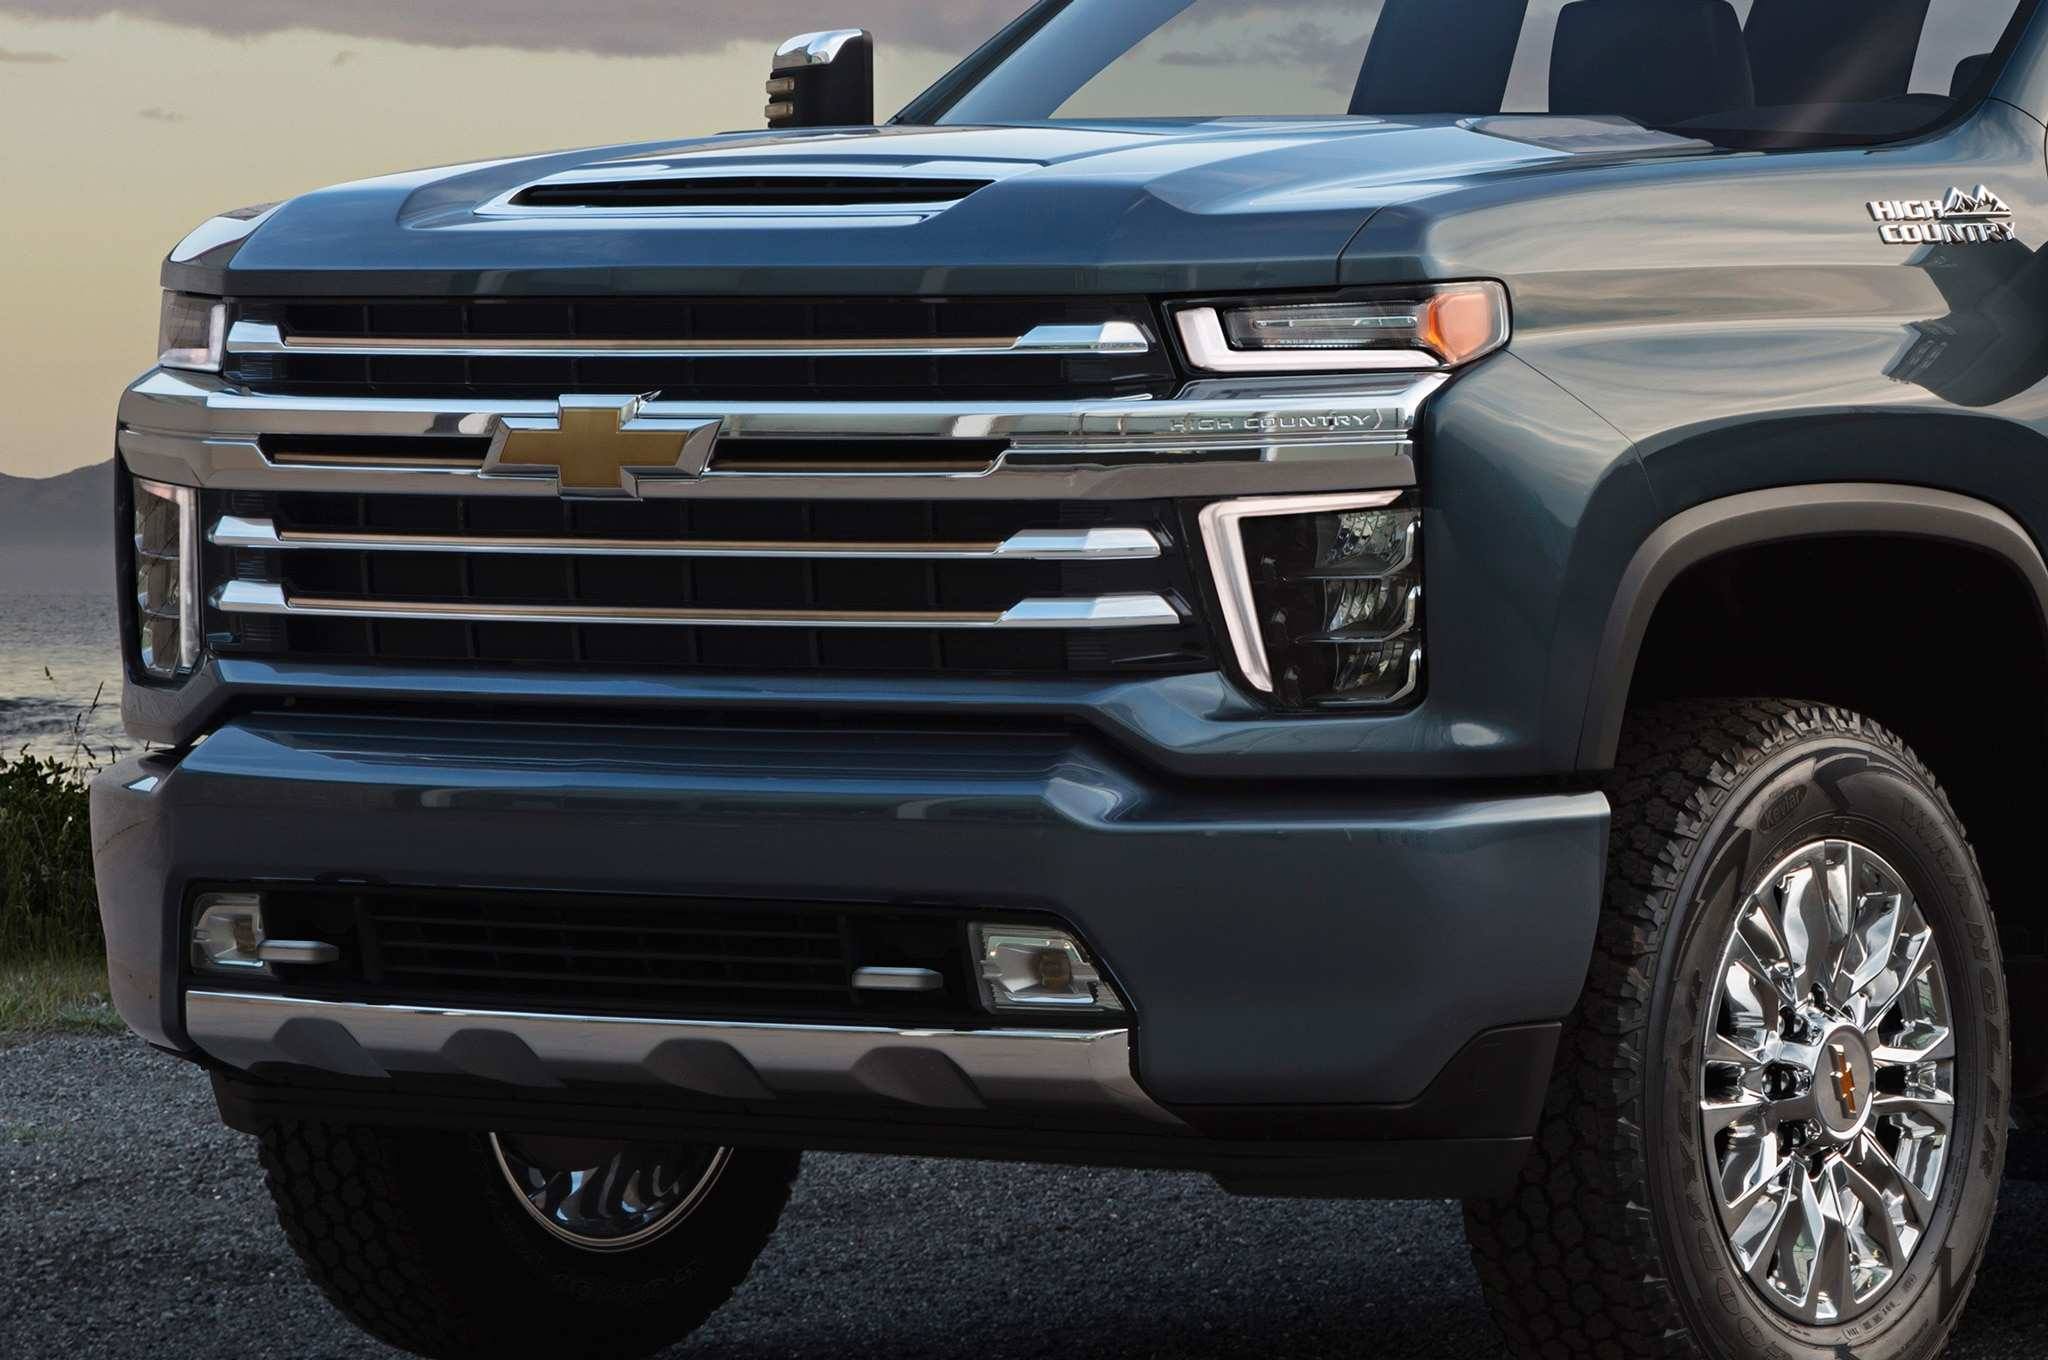 89 The Best 2020 Chevrolet Grill Exterior and Interior